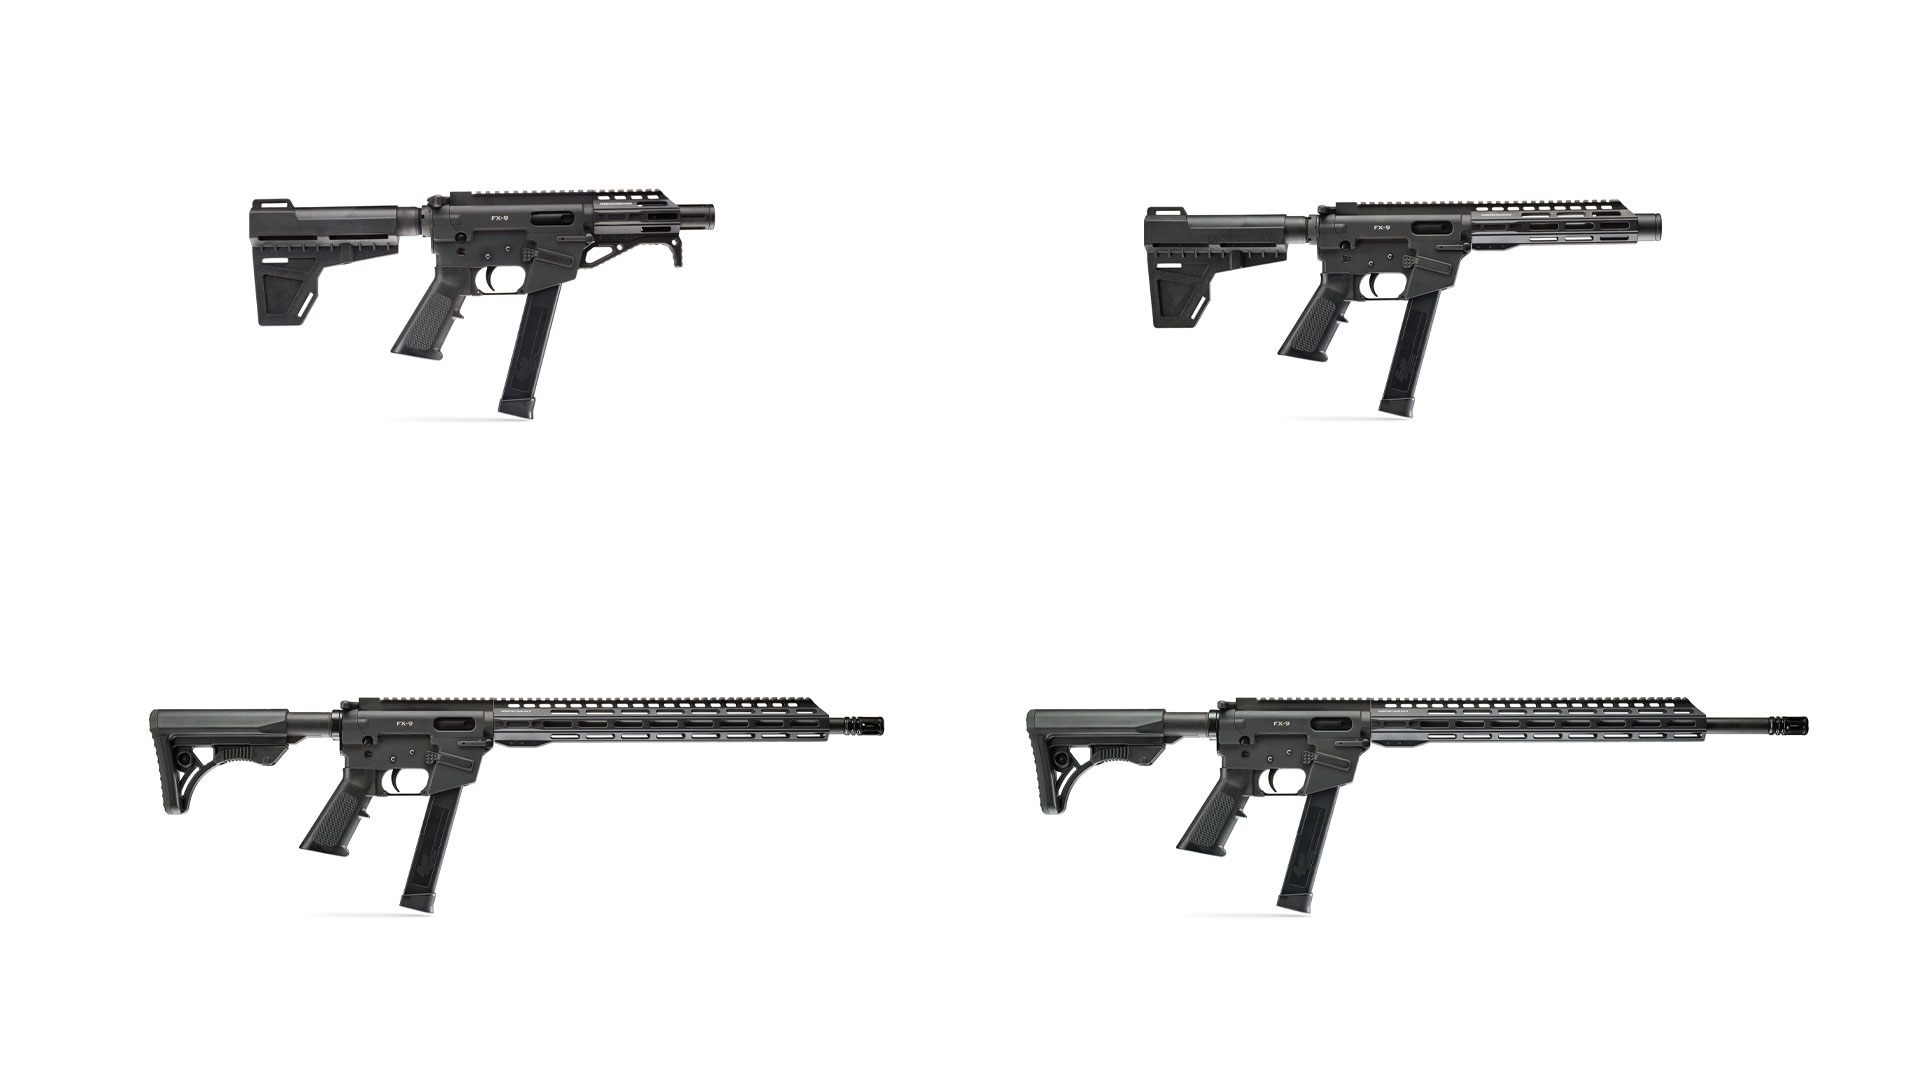 Freedom Ordnance FX-9 Product Group